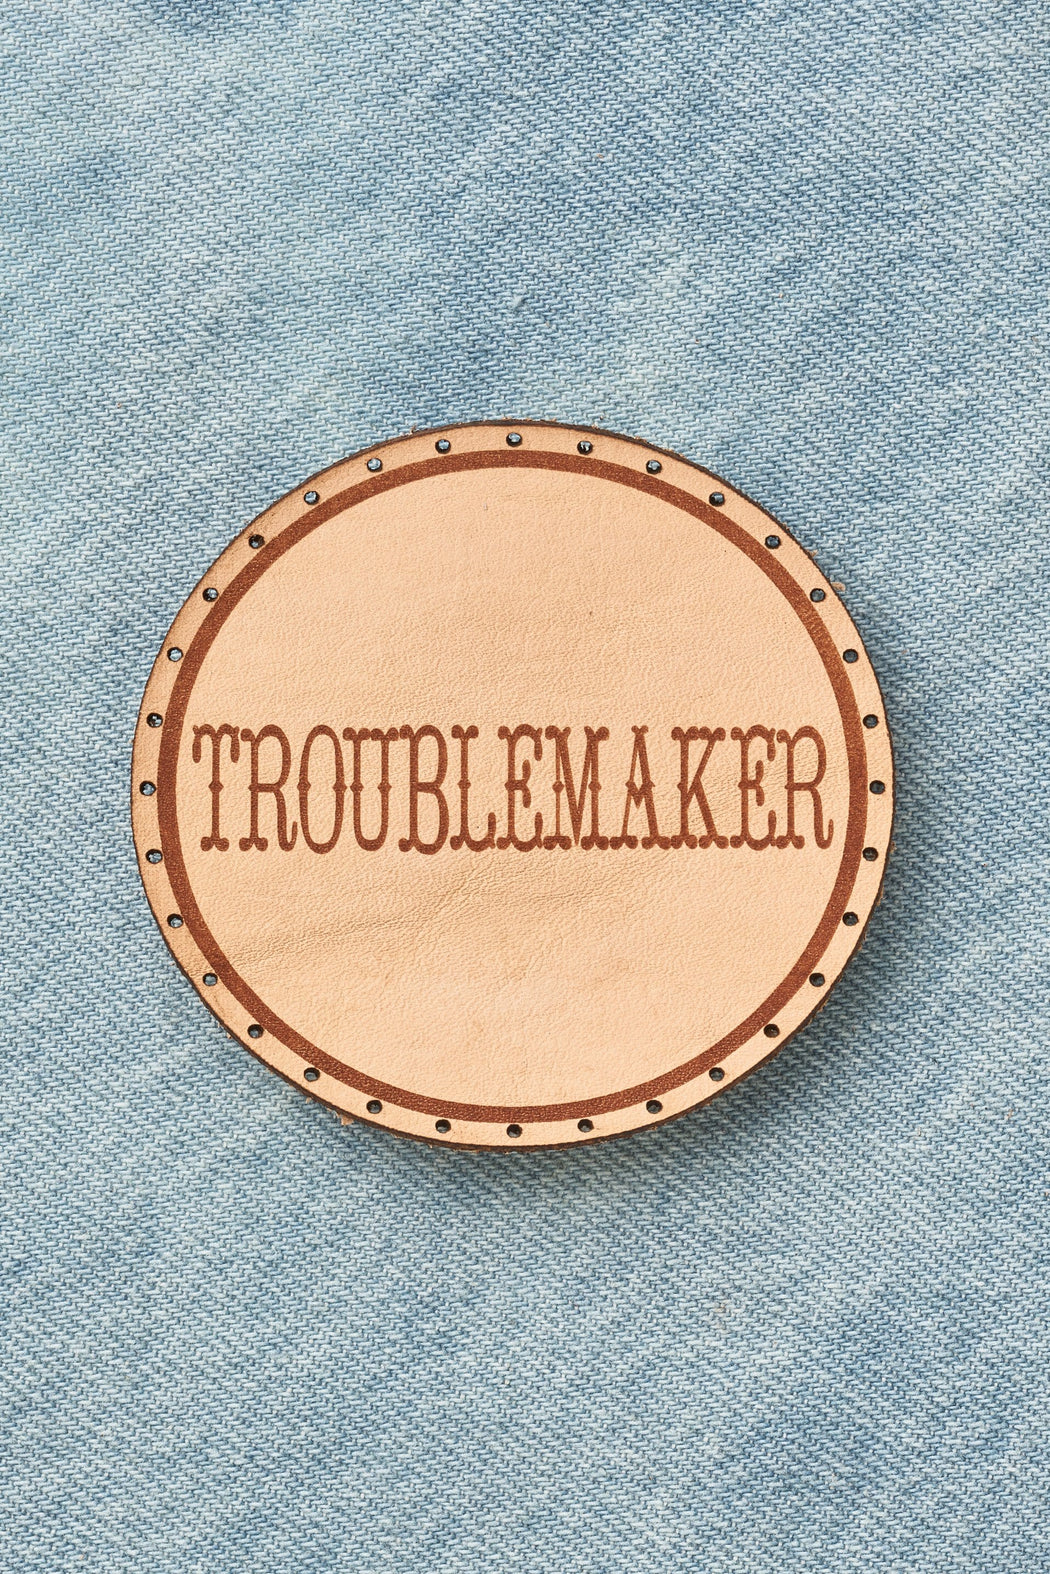 troublemaker patch